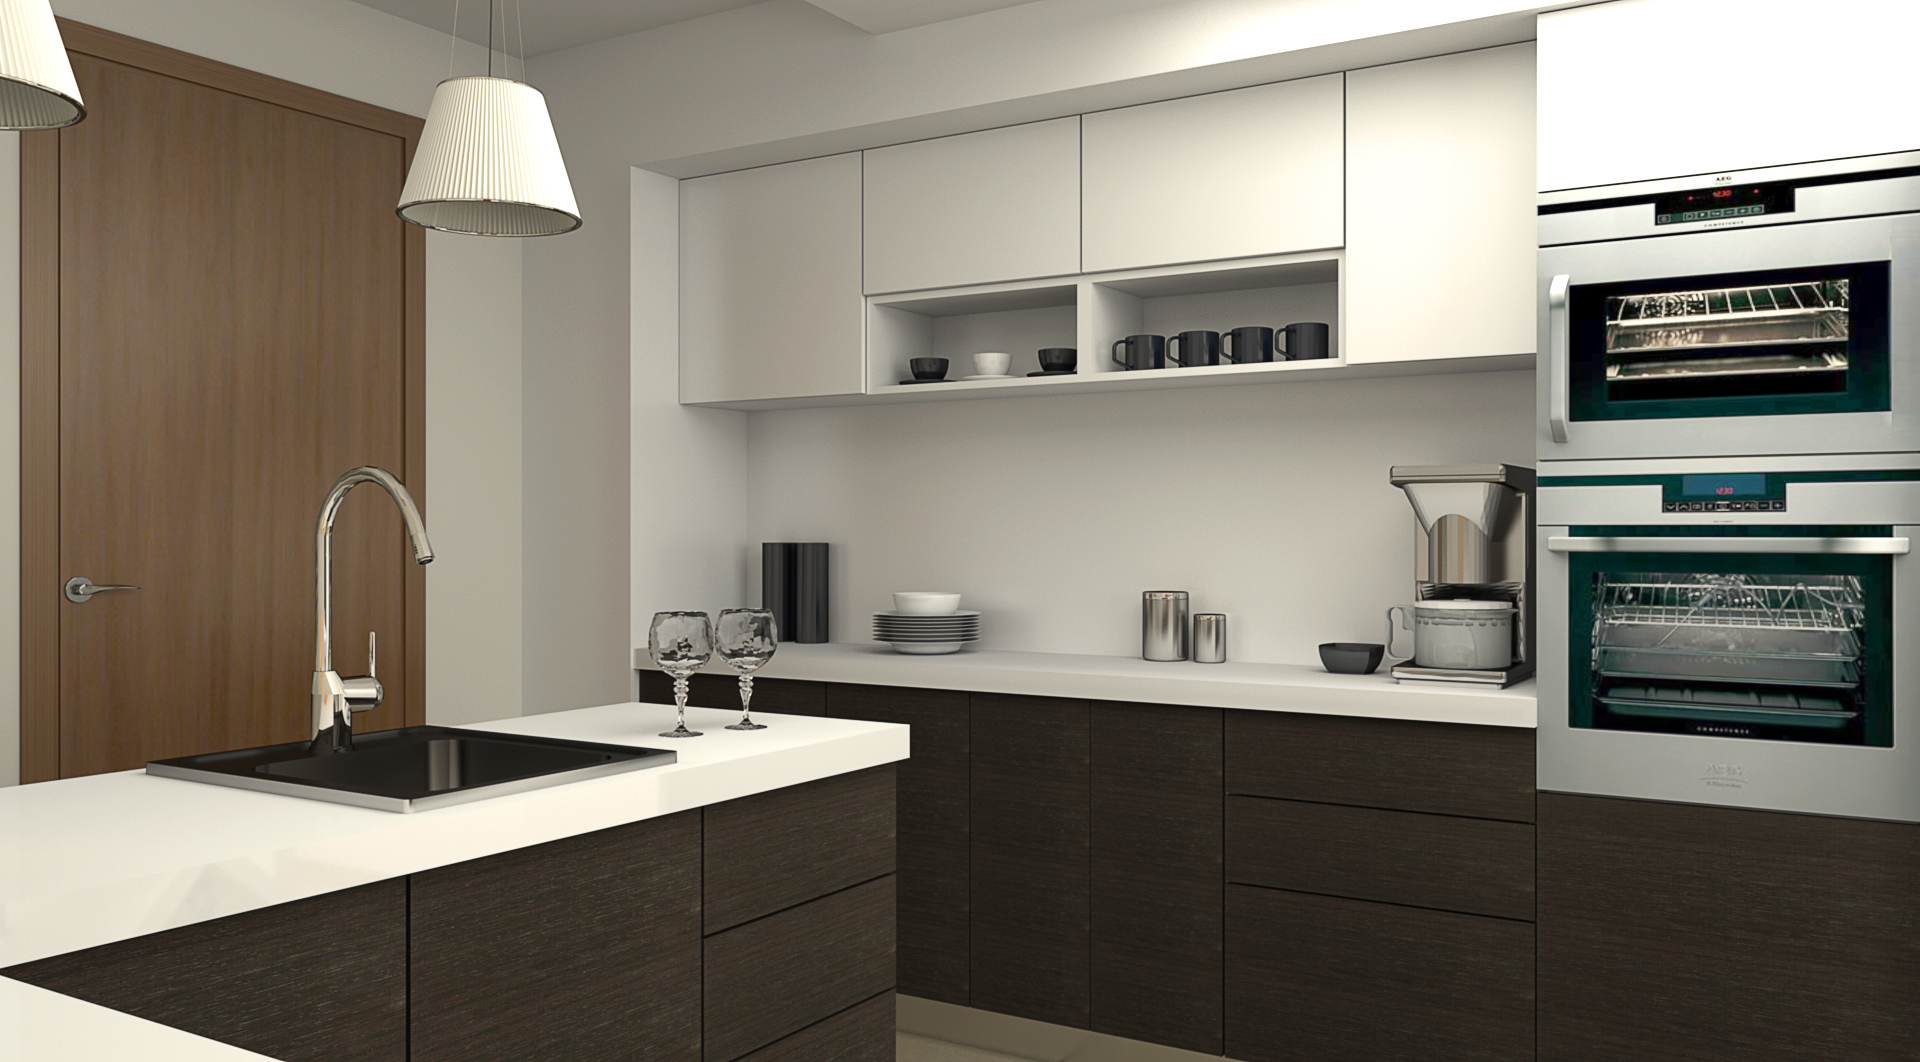 kitchen design godrej interio modular kitchen island home design 729